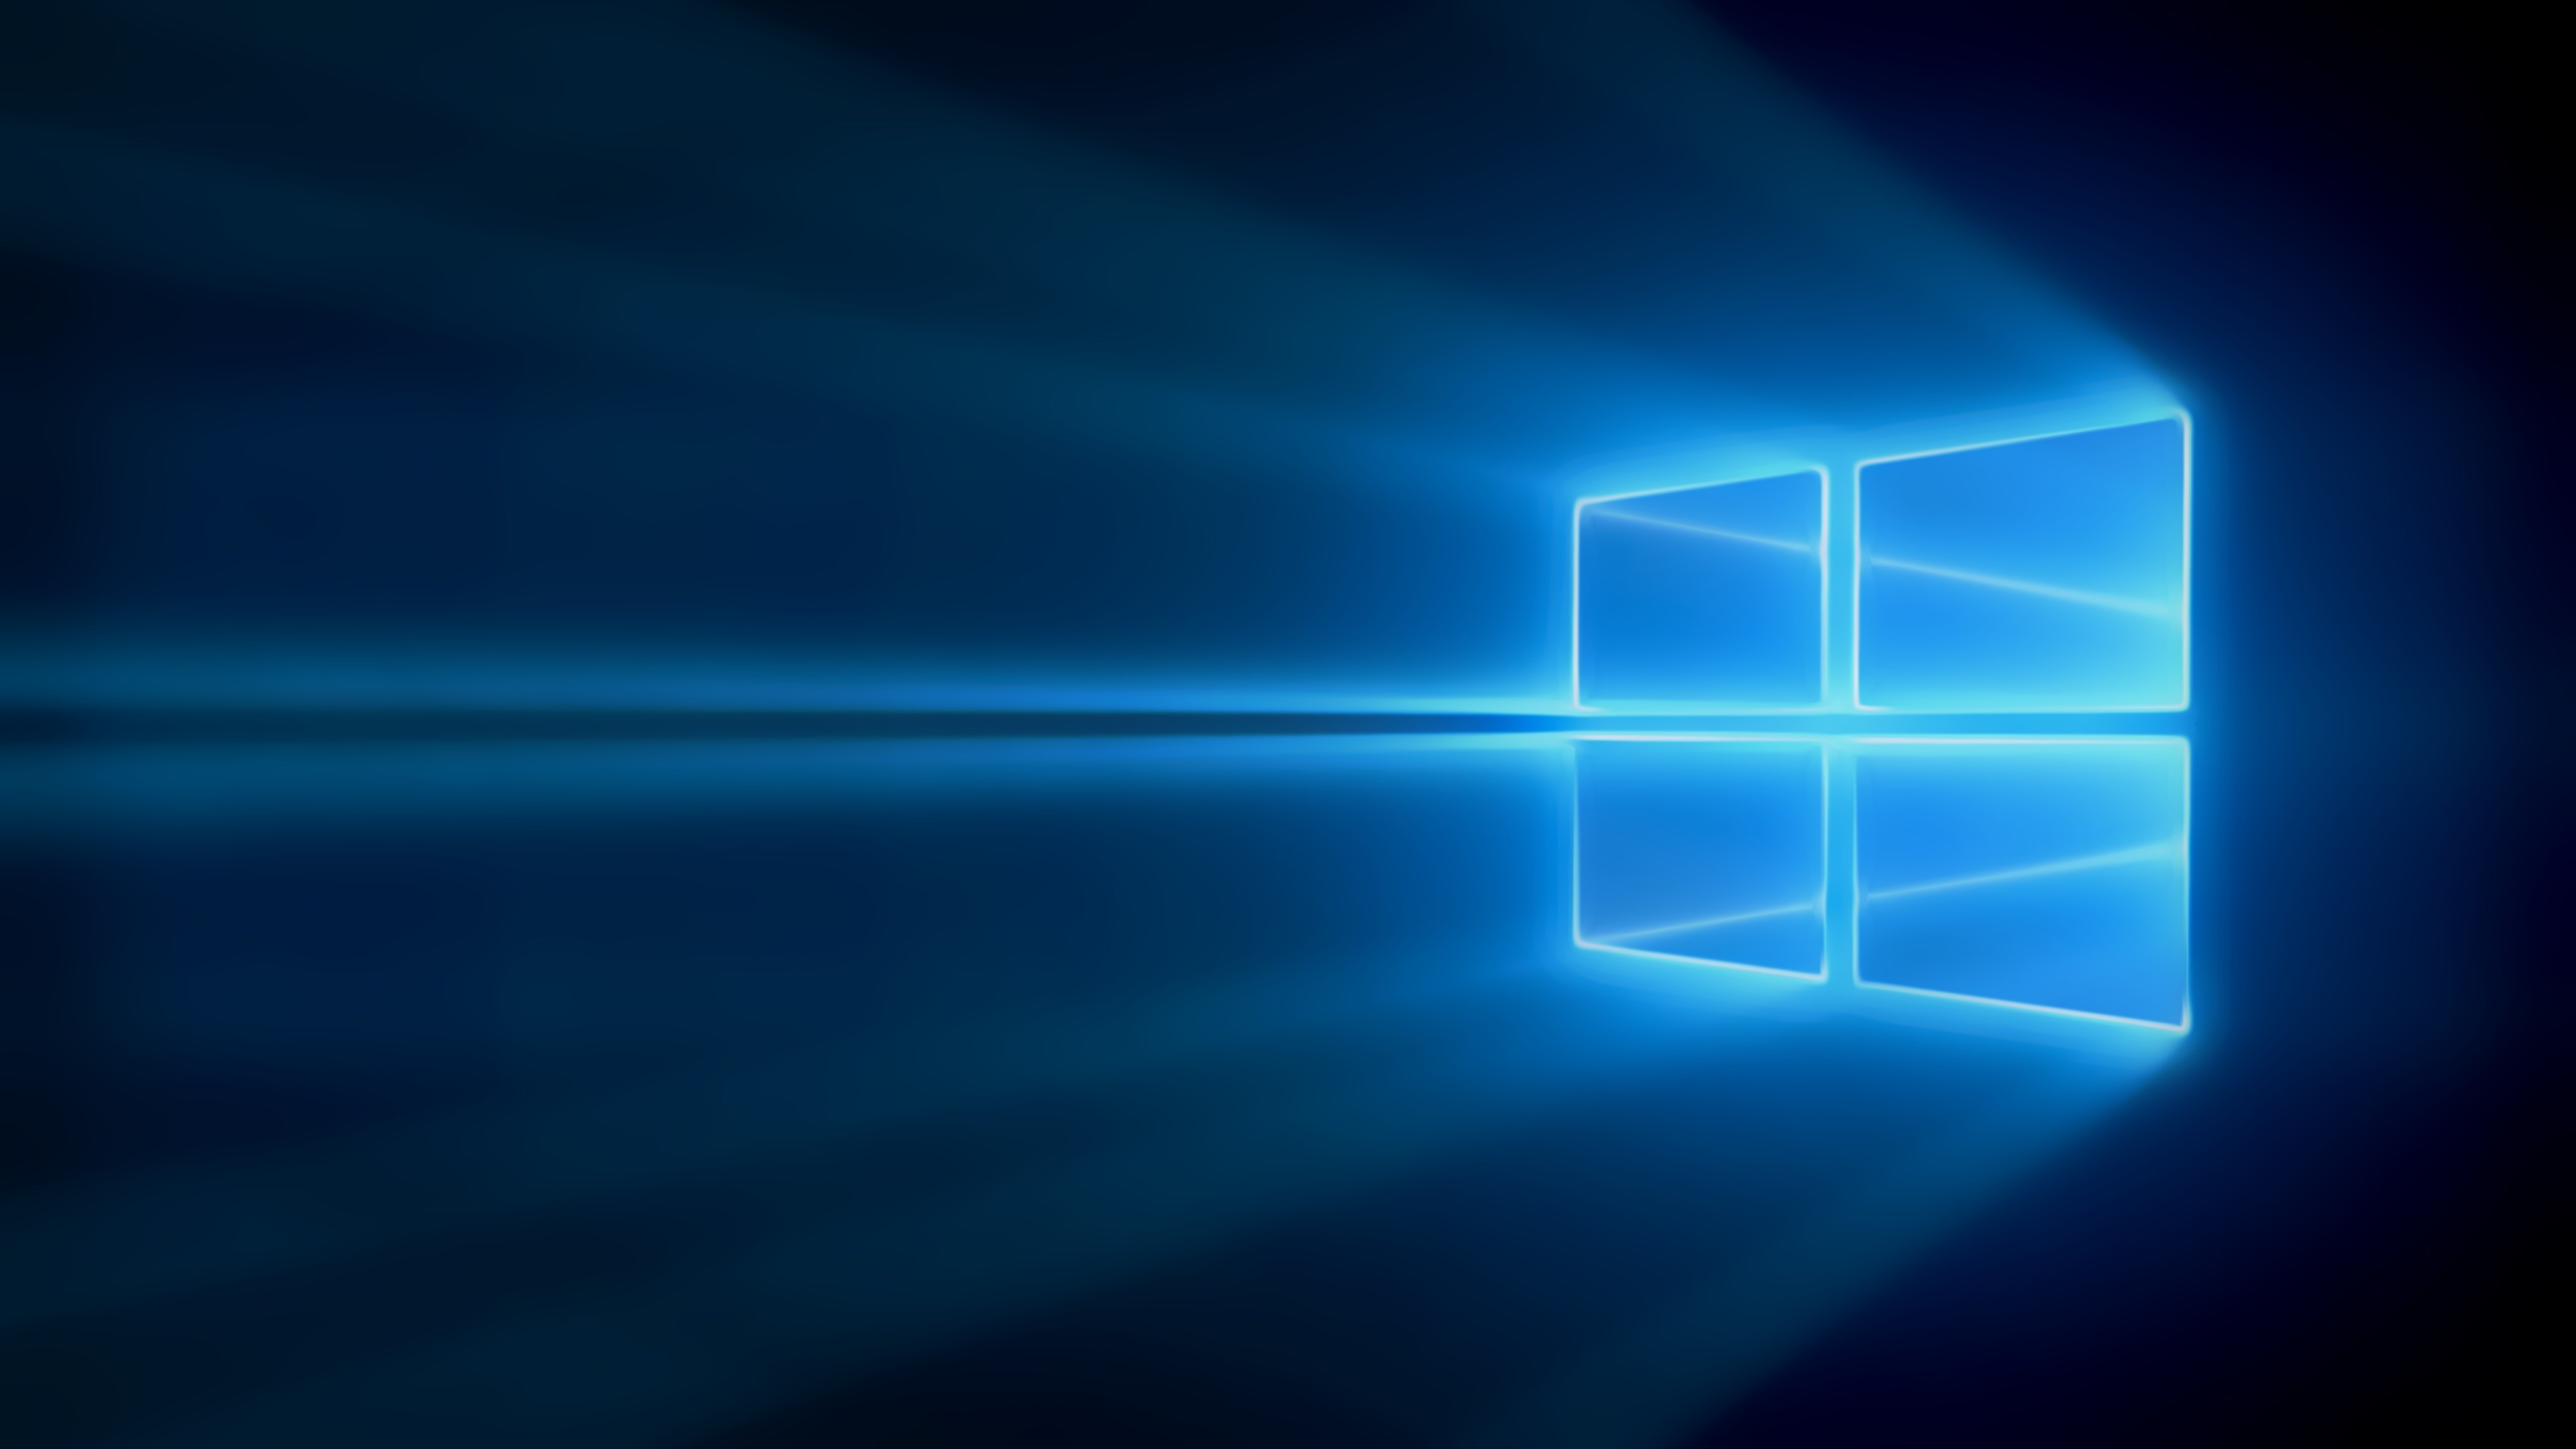 Wallpapers Windows 10 88 Background Pictures